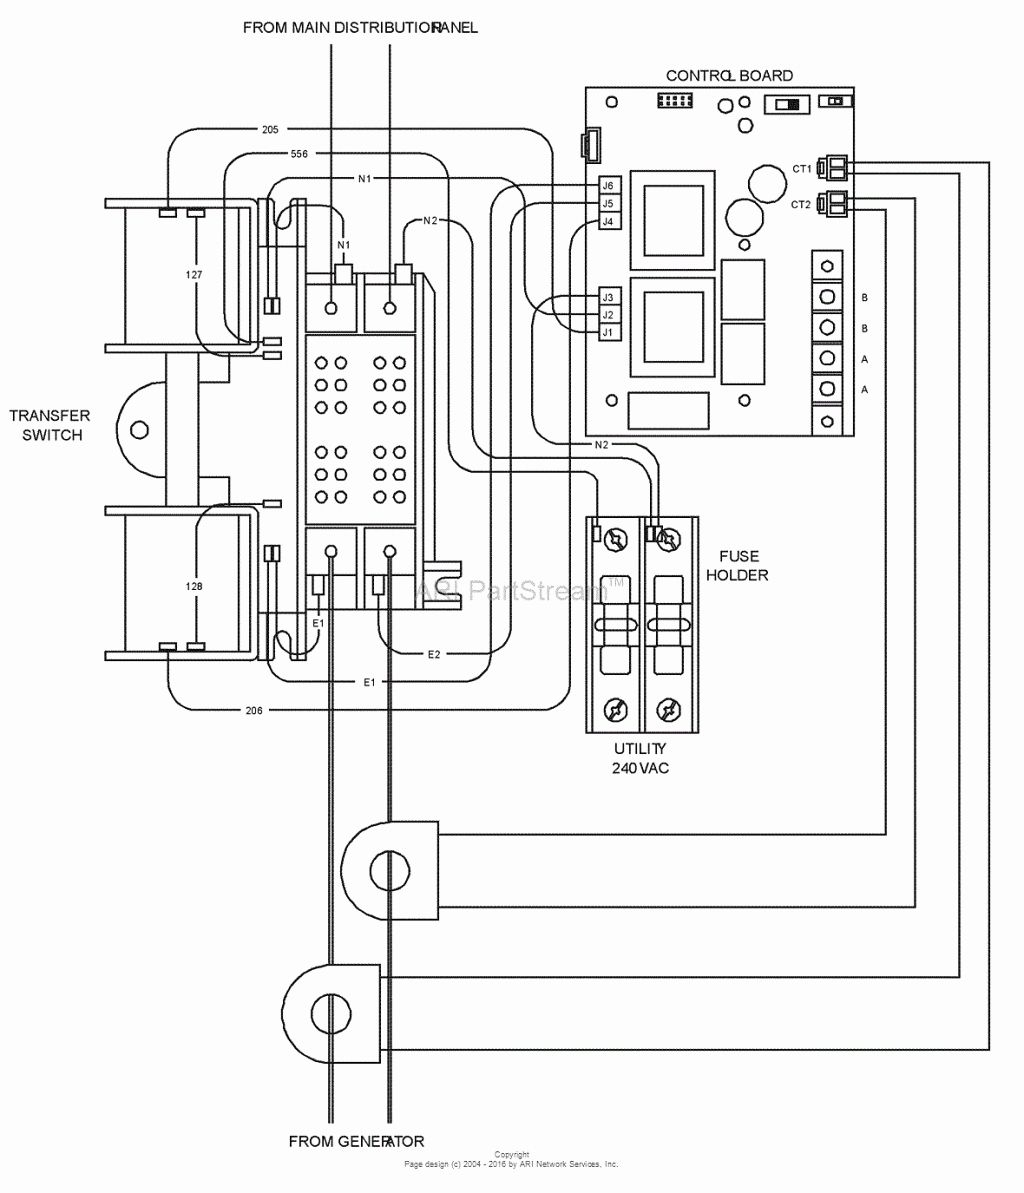 50 Amp Transfer Switch Wiring Diagram